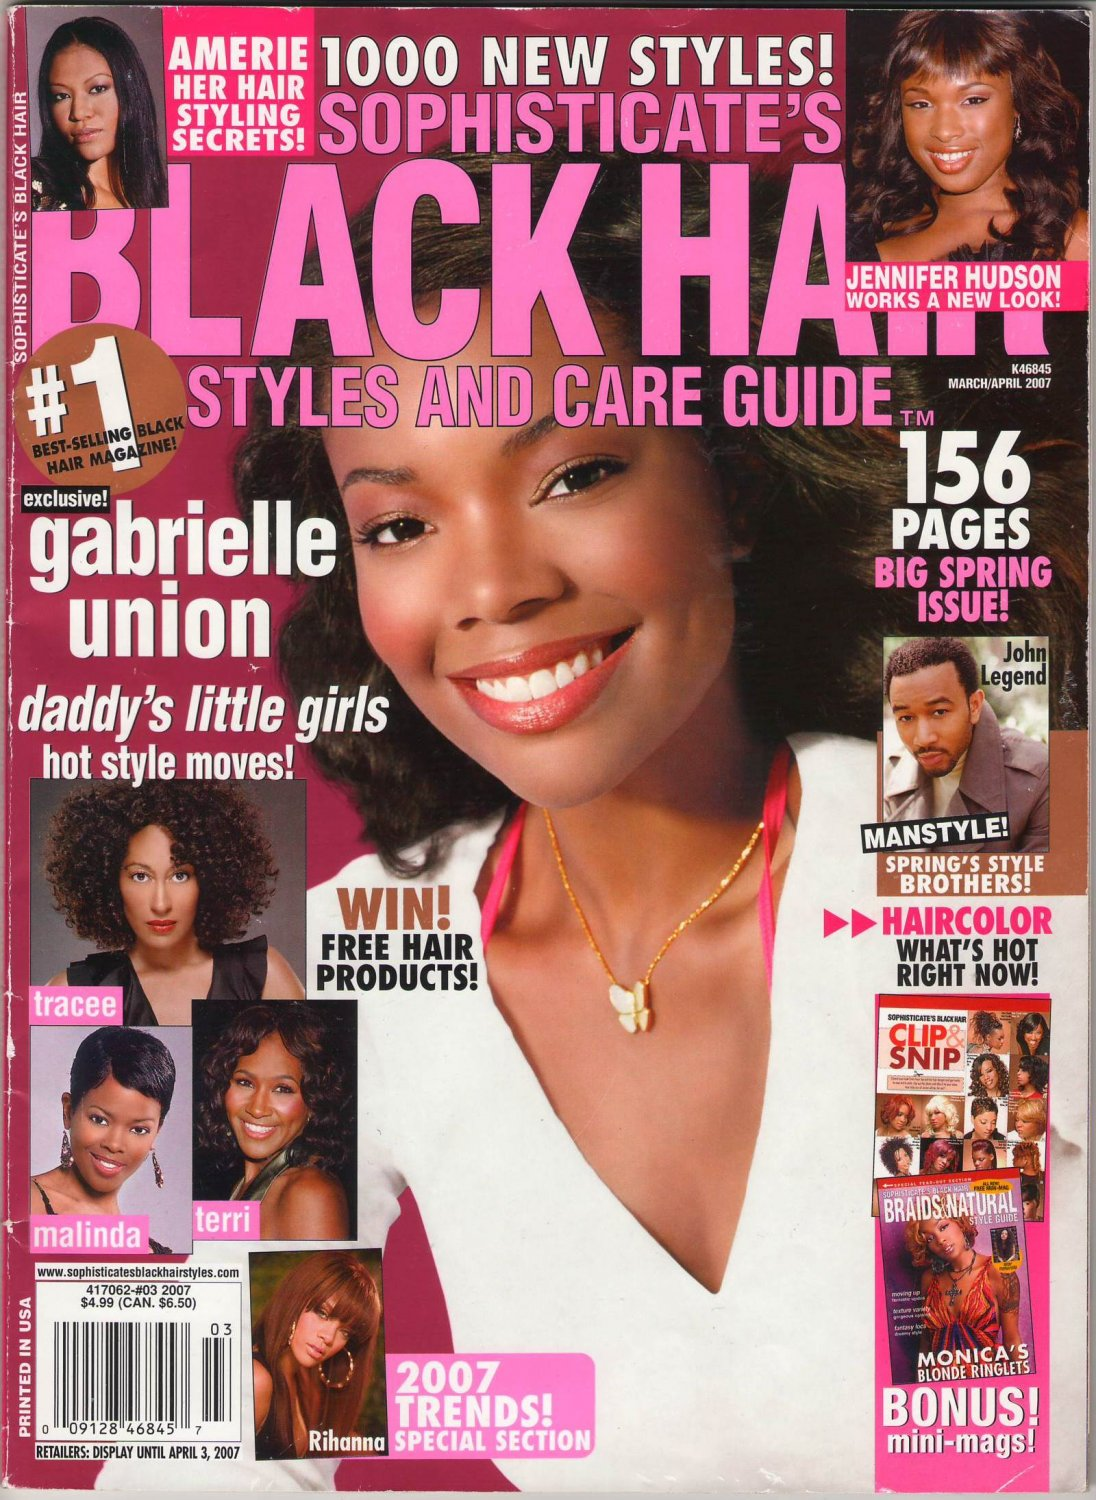 Sophisticates Black Hair Styles and Care Magazine Guide Amerie Her Hair Styling Secrets